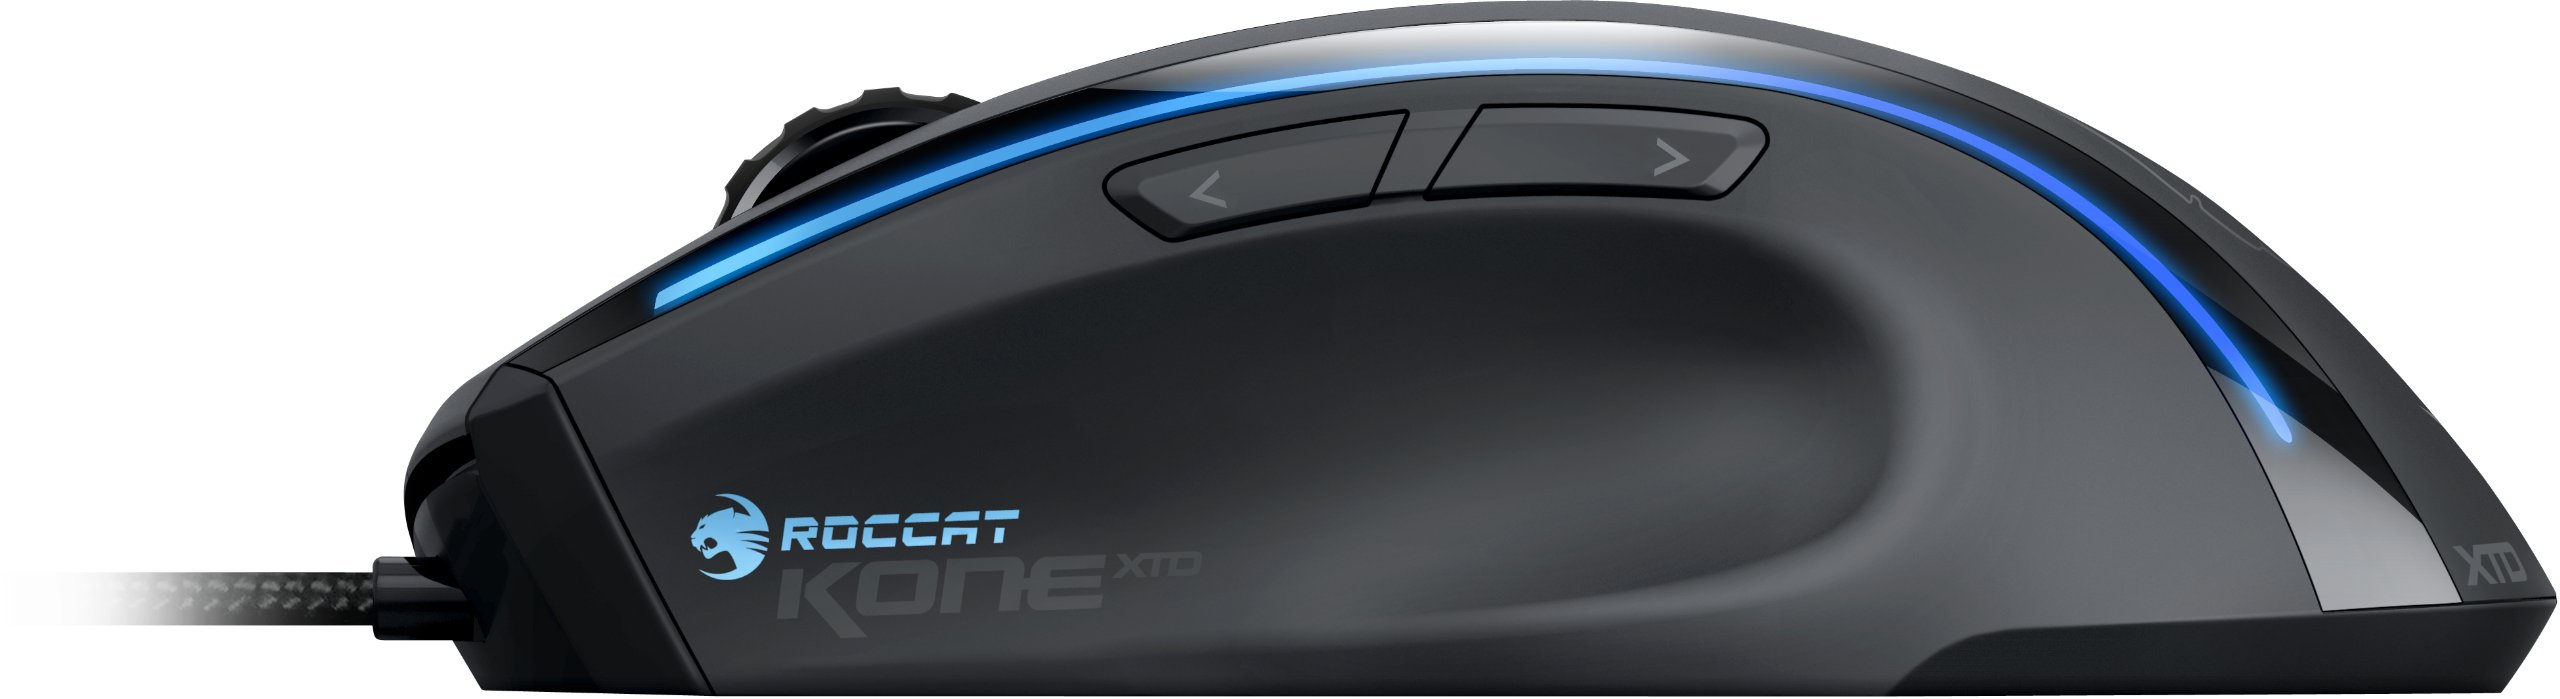 ROCCAT KONE XTD - Max Customization Gaming Mouse by ROCCAT (Image #6)